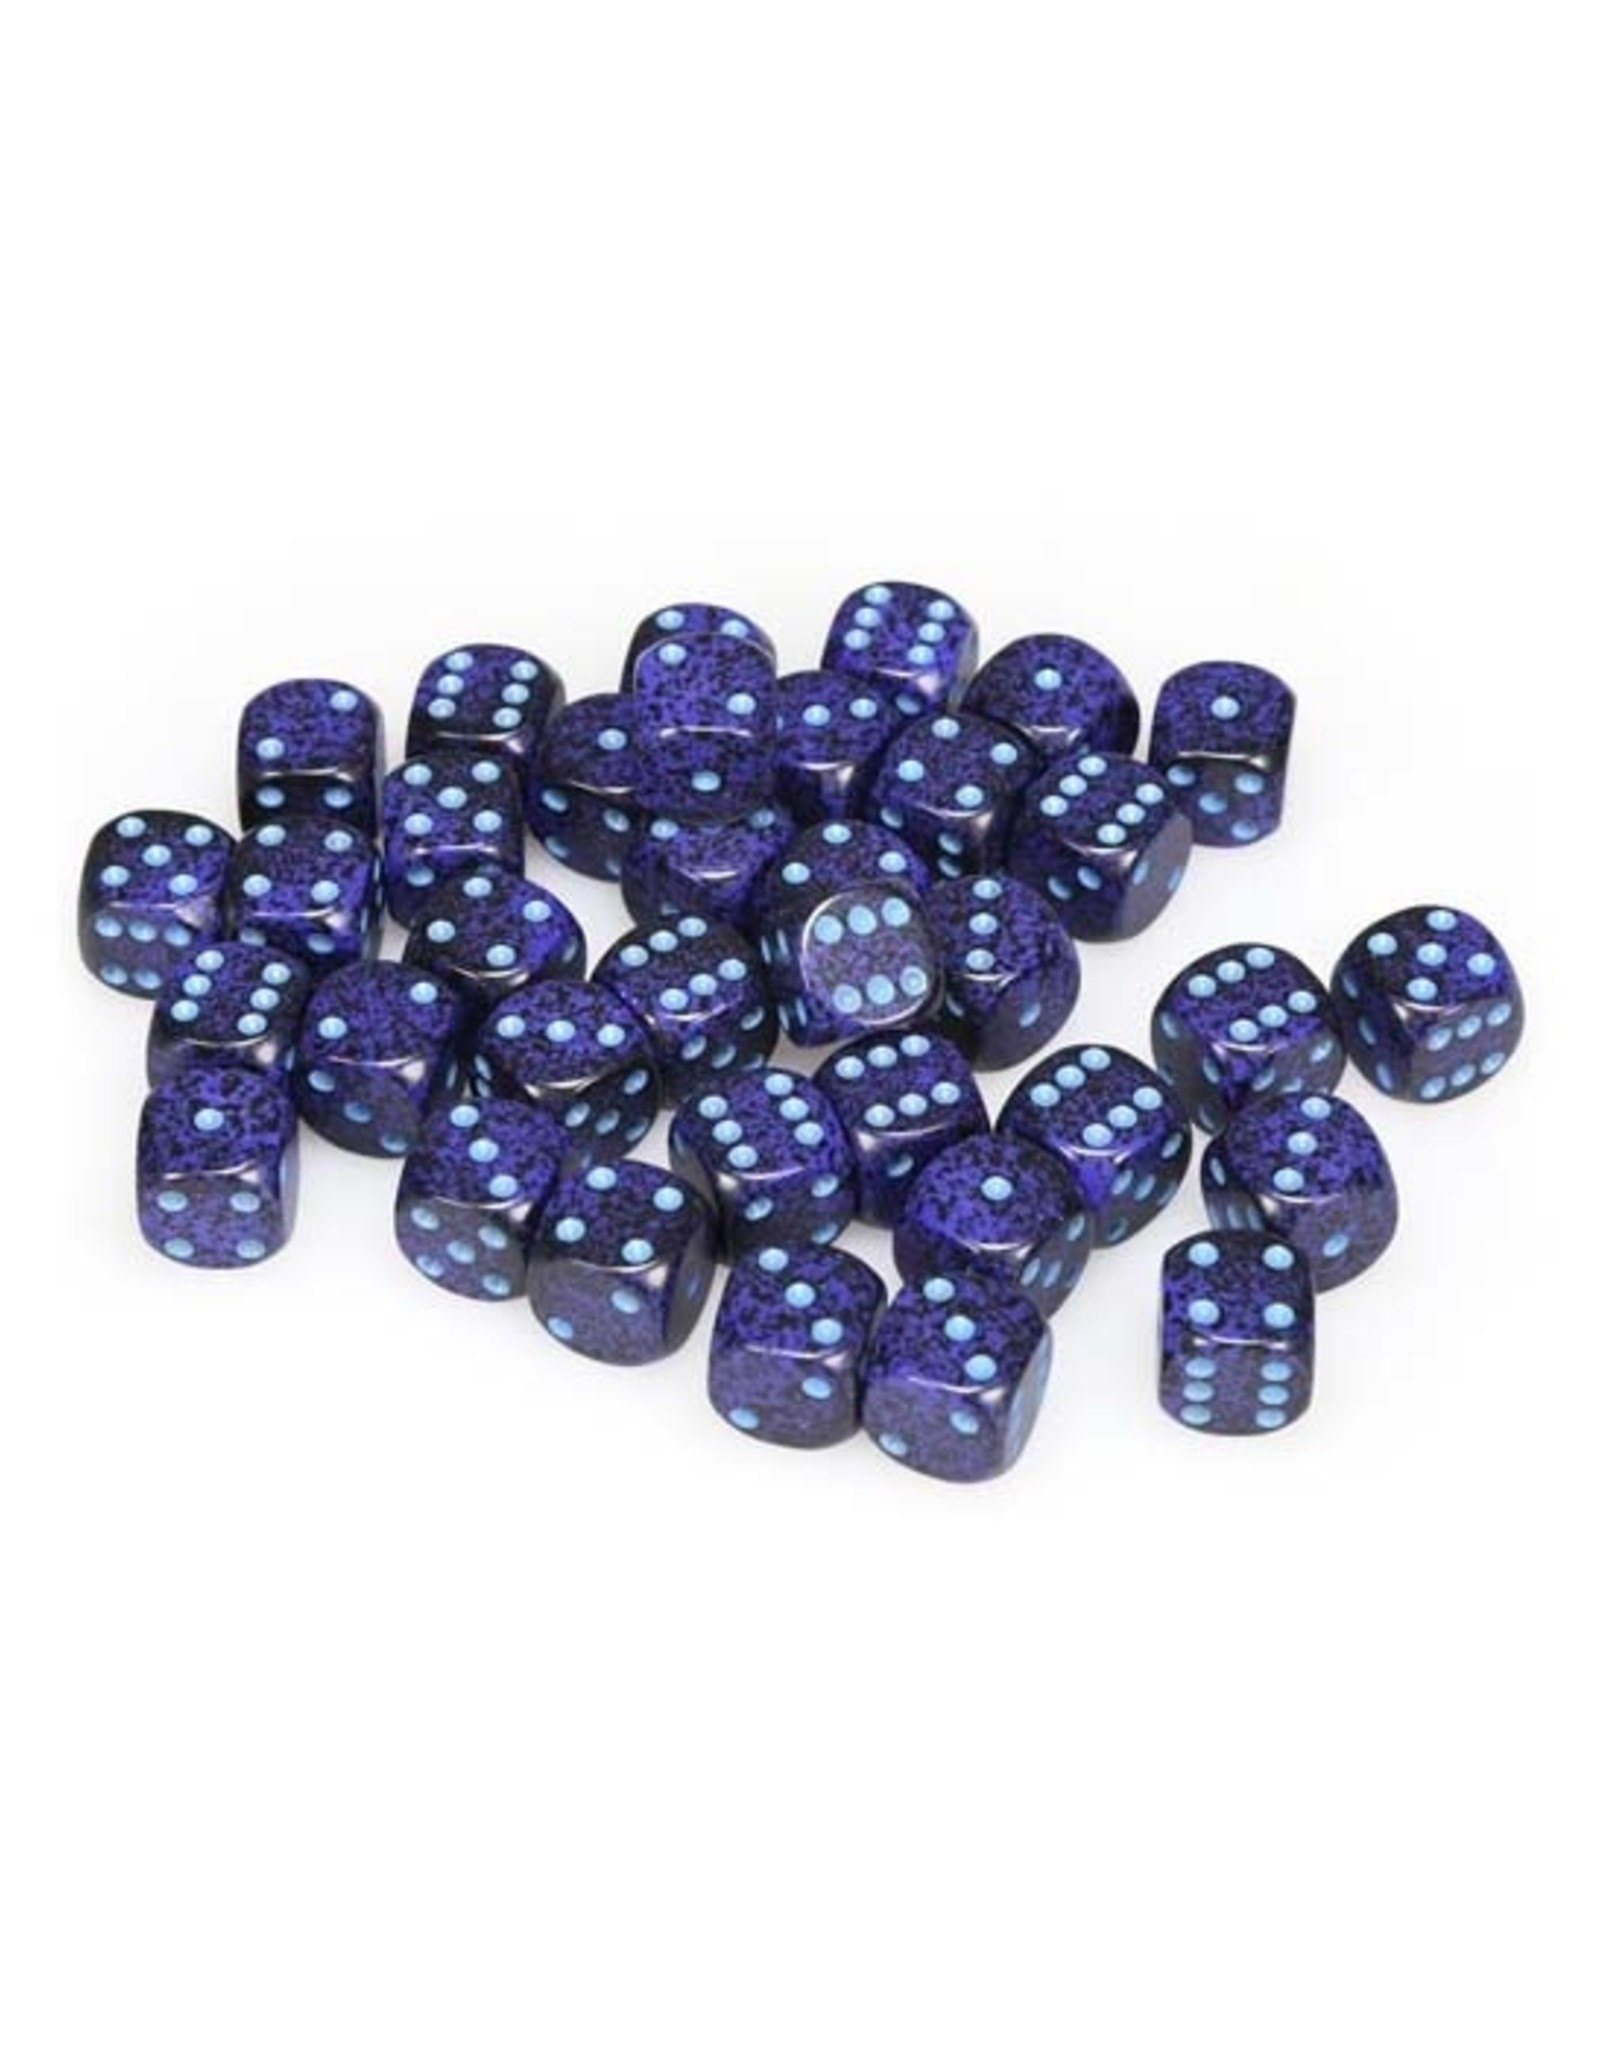 Chessex Chessex: 12mm D6 - Speckled - Cobalt